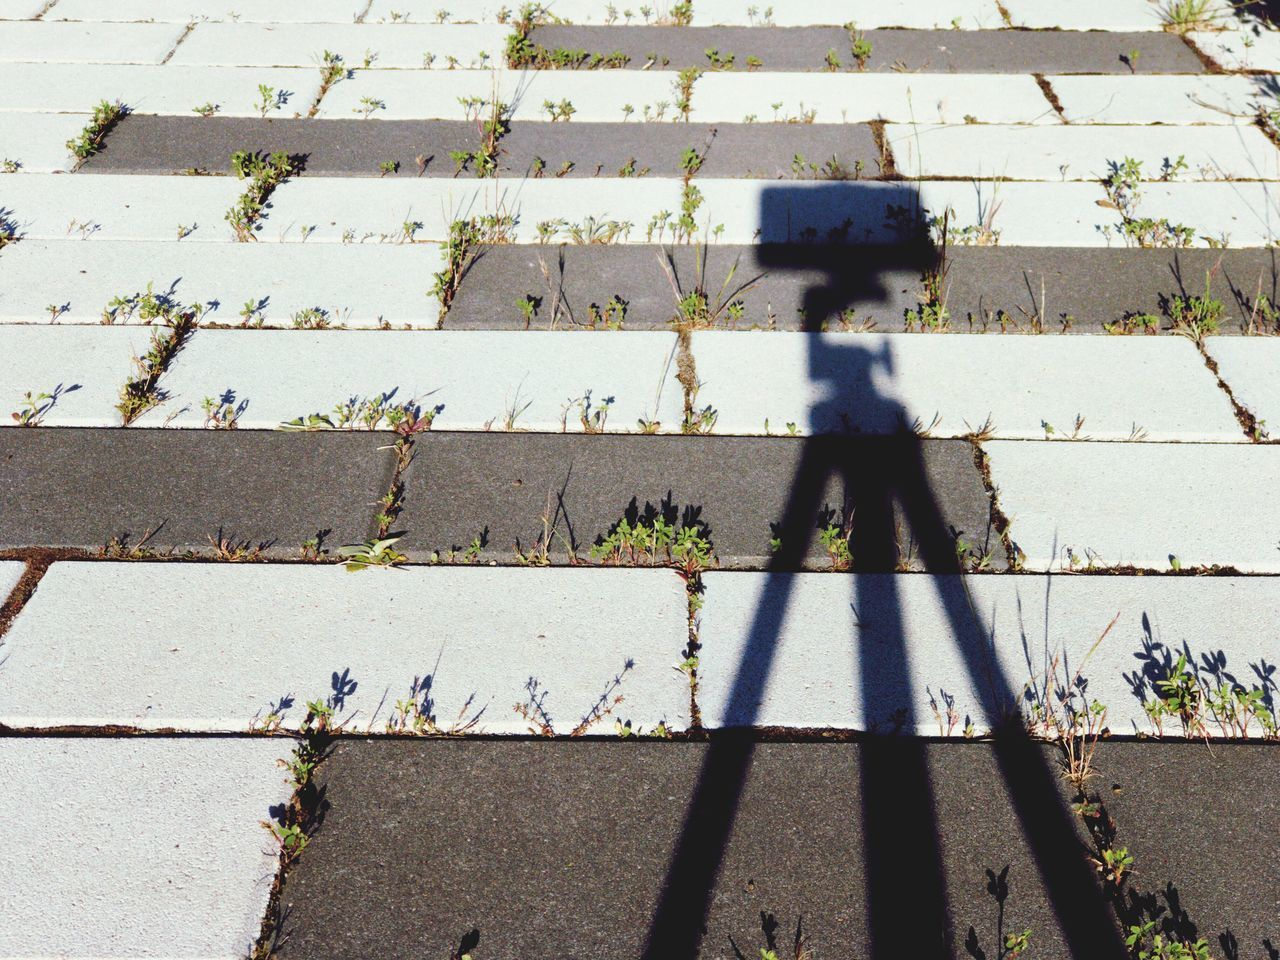 Light And Shadow Sunlight Shadow Streetphotography Street Floortraits Soil Ground Plant Adapted To The City Urban Shadows & Lights Tripod Photographer Environment Plants Backgrounds Background Nature Grass Light Outdoors Architecture Architecture_collection Urban Landscape